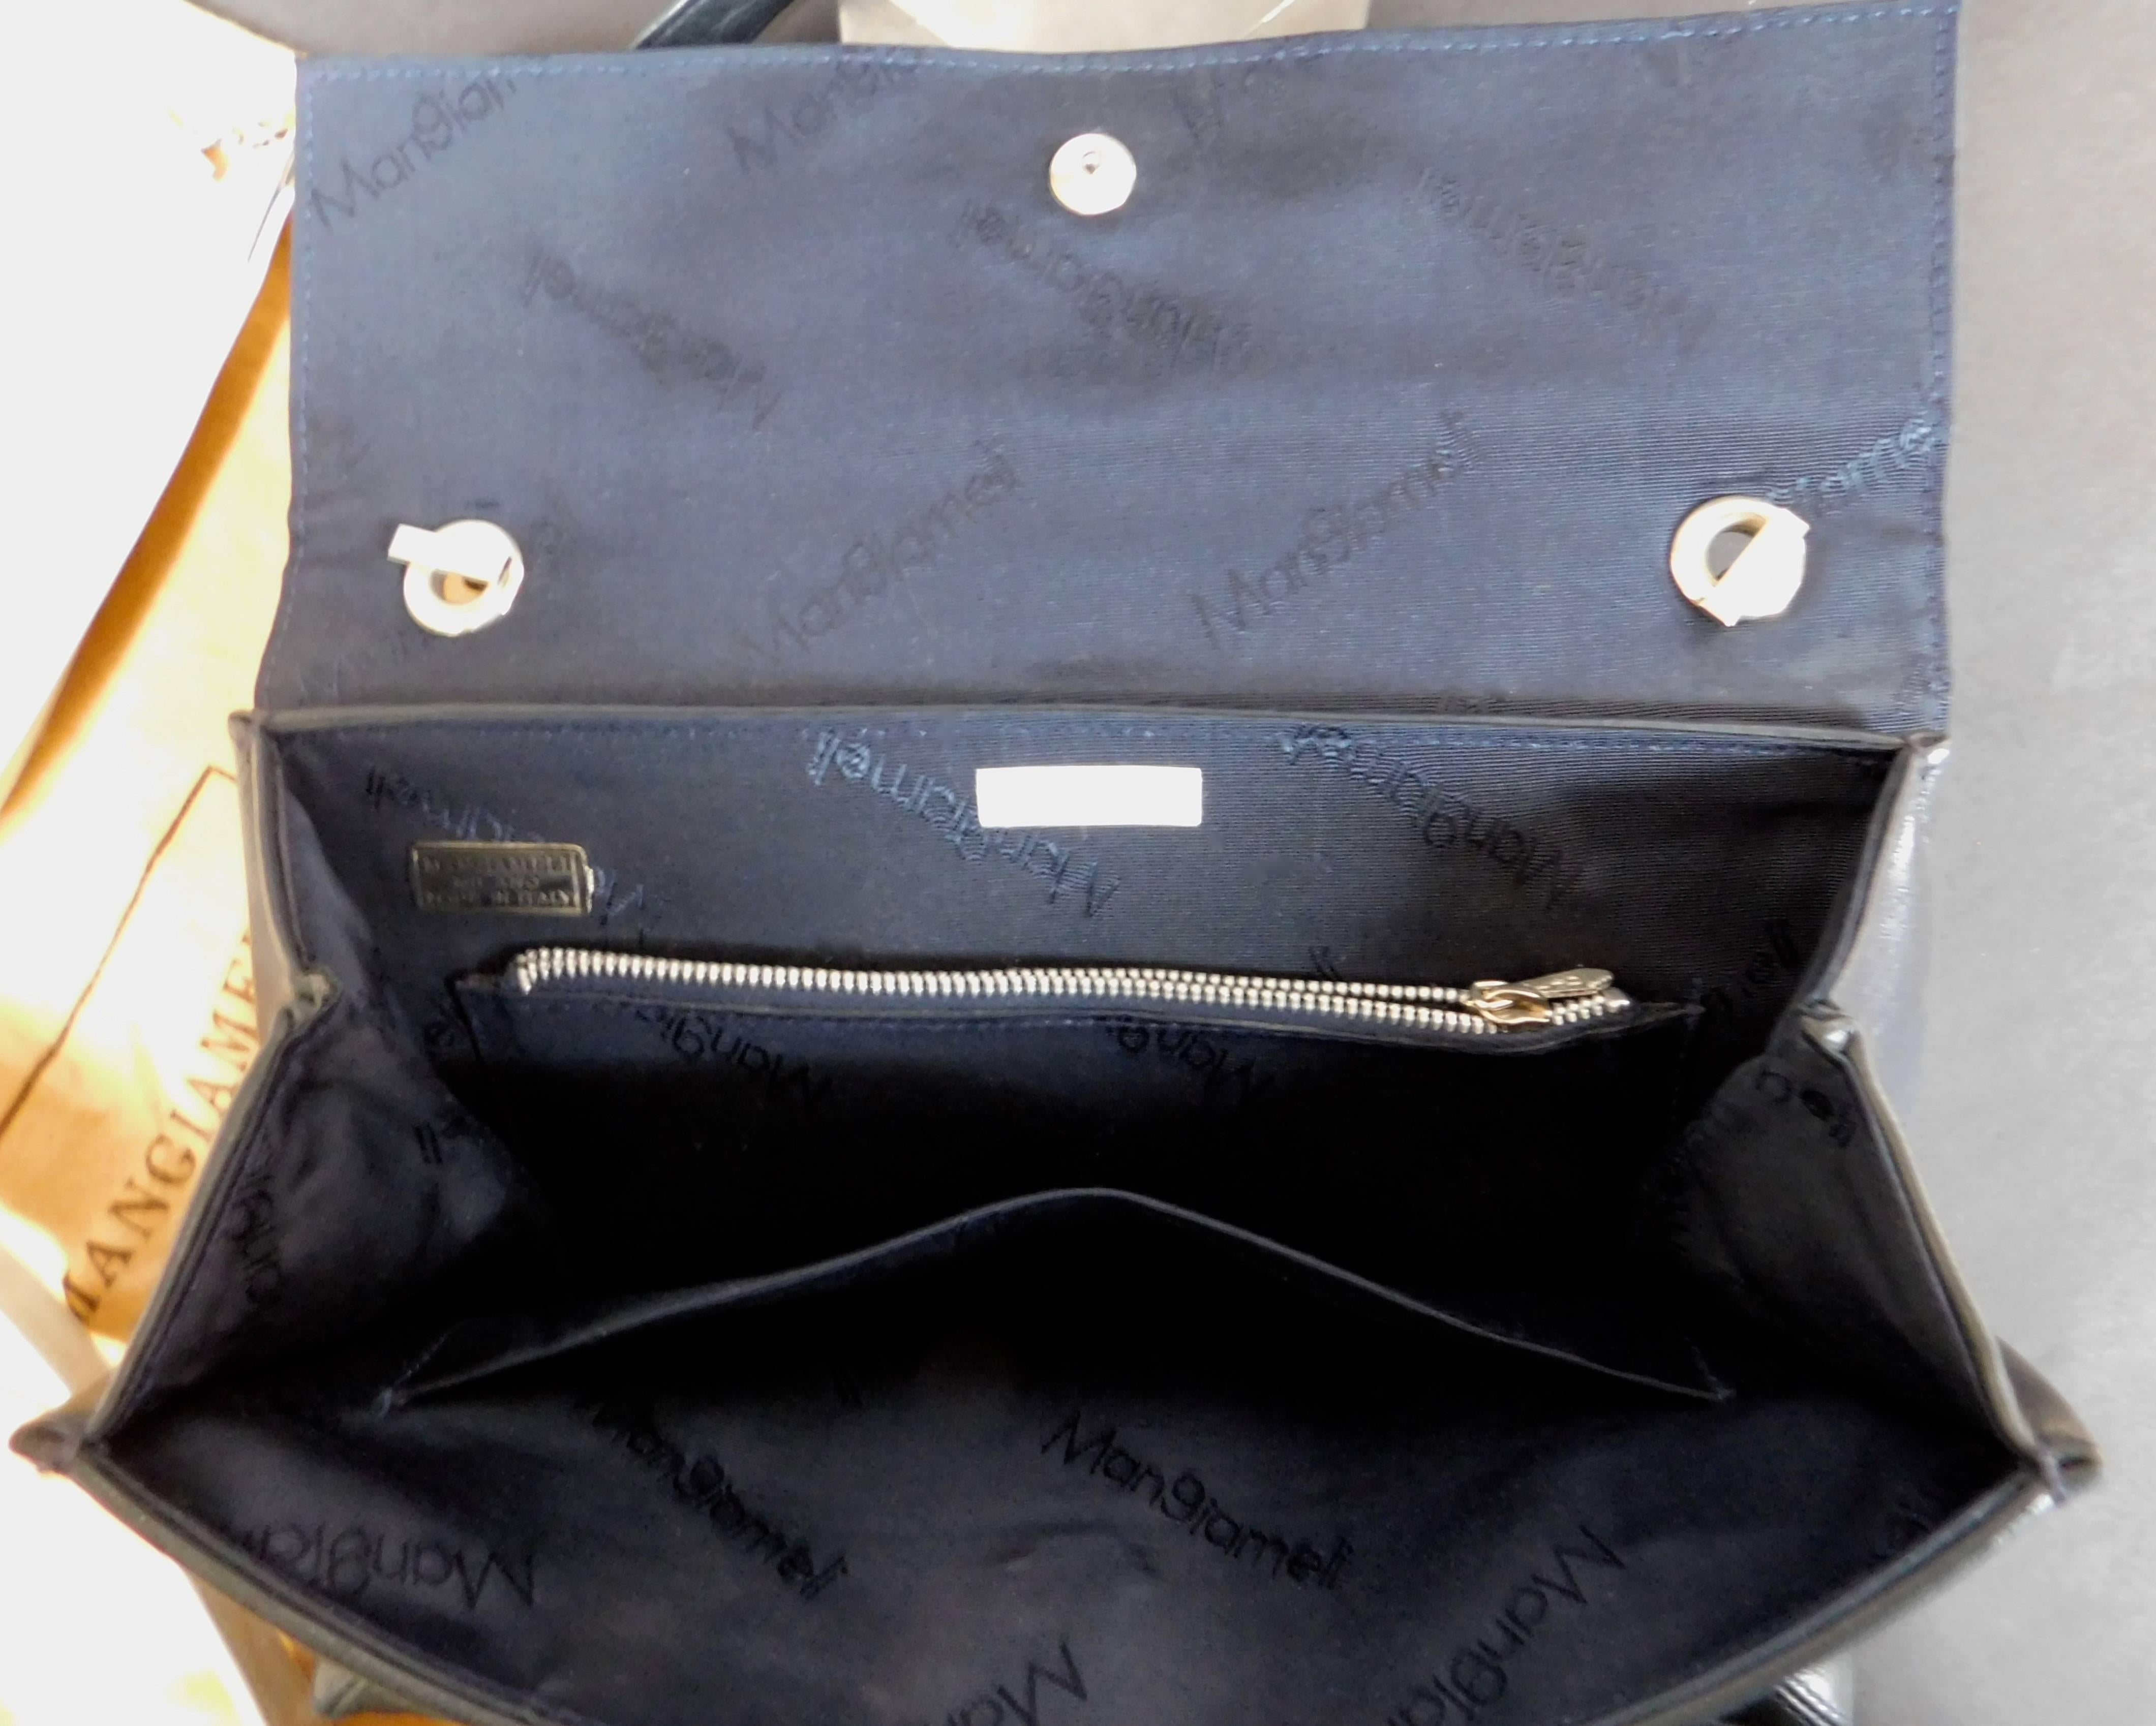 7c4a0671e Mangiameli Vintage Italian Navy Blue and White Calfskin Leather Handbag For  Sale at 1stdibs